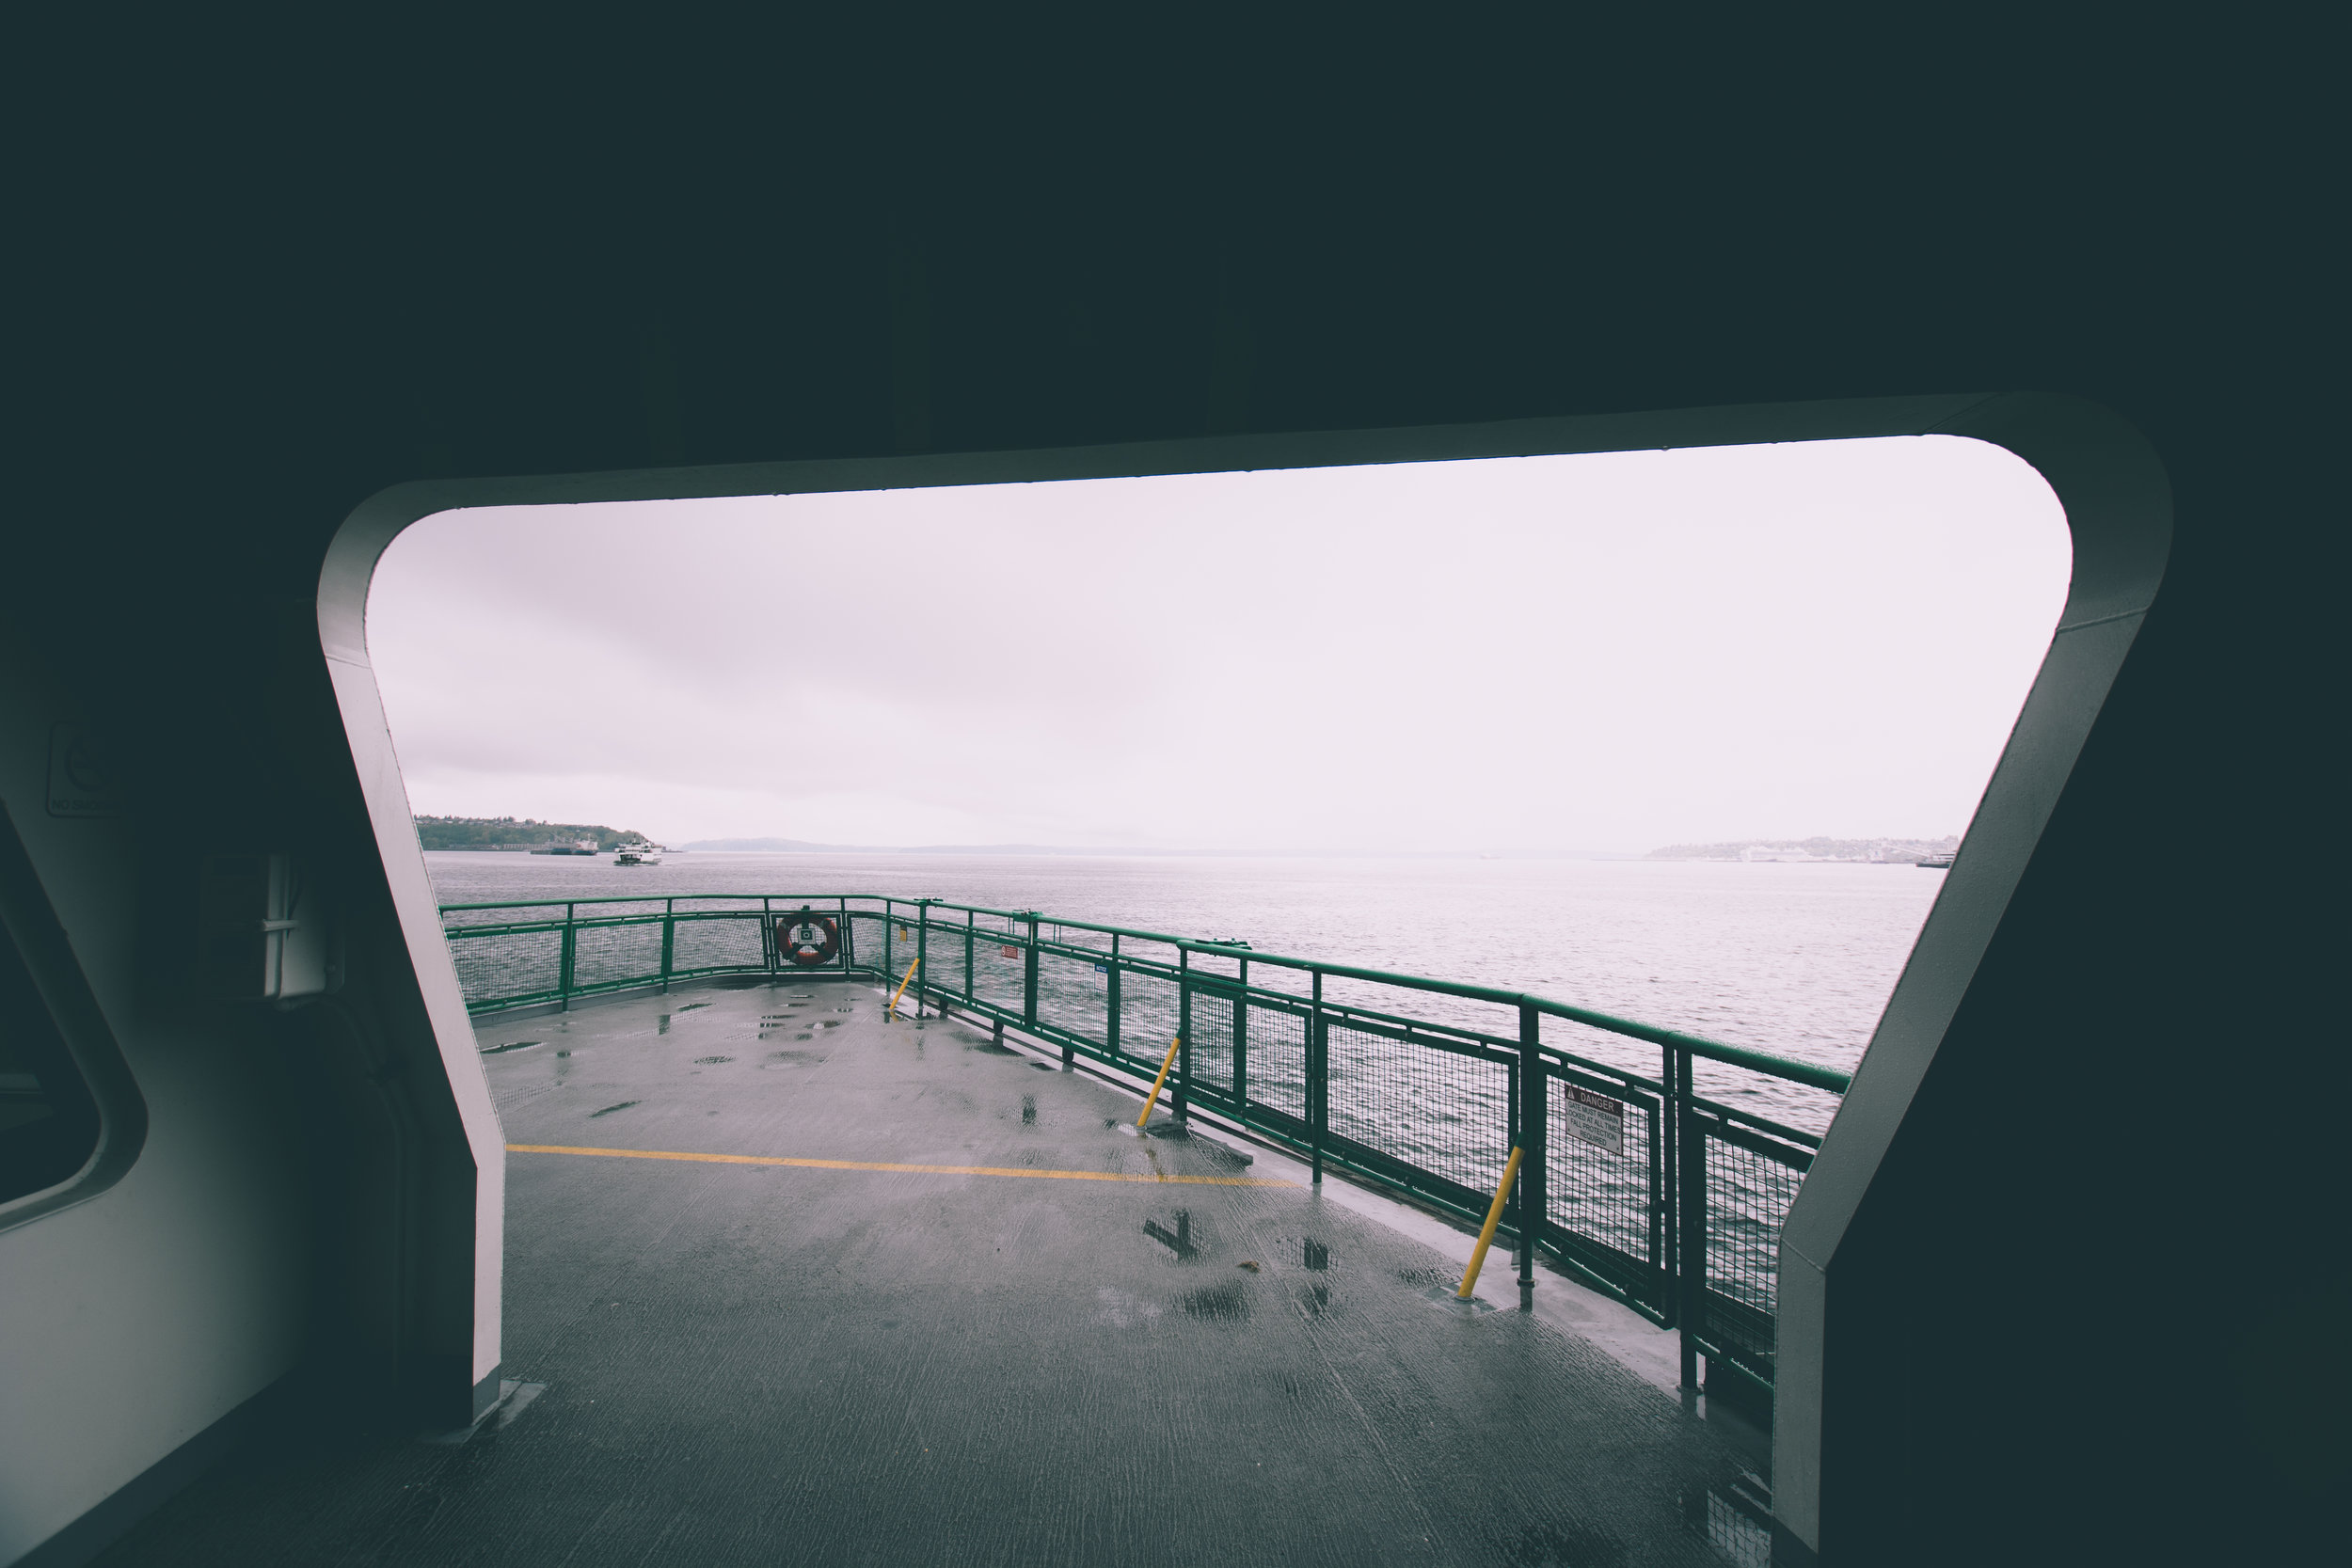 Transportation - Seattle - Bainbridge Ferry